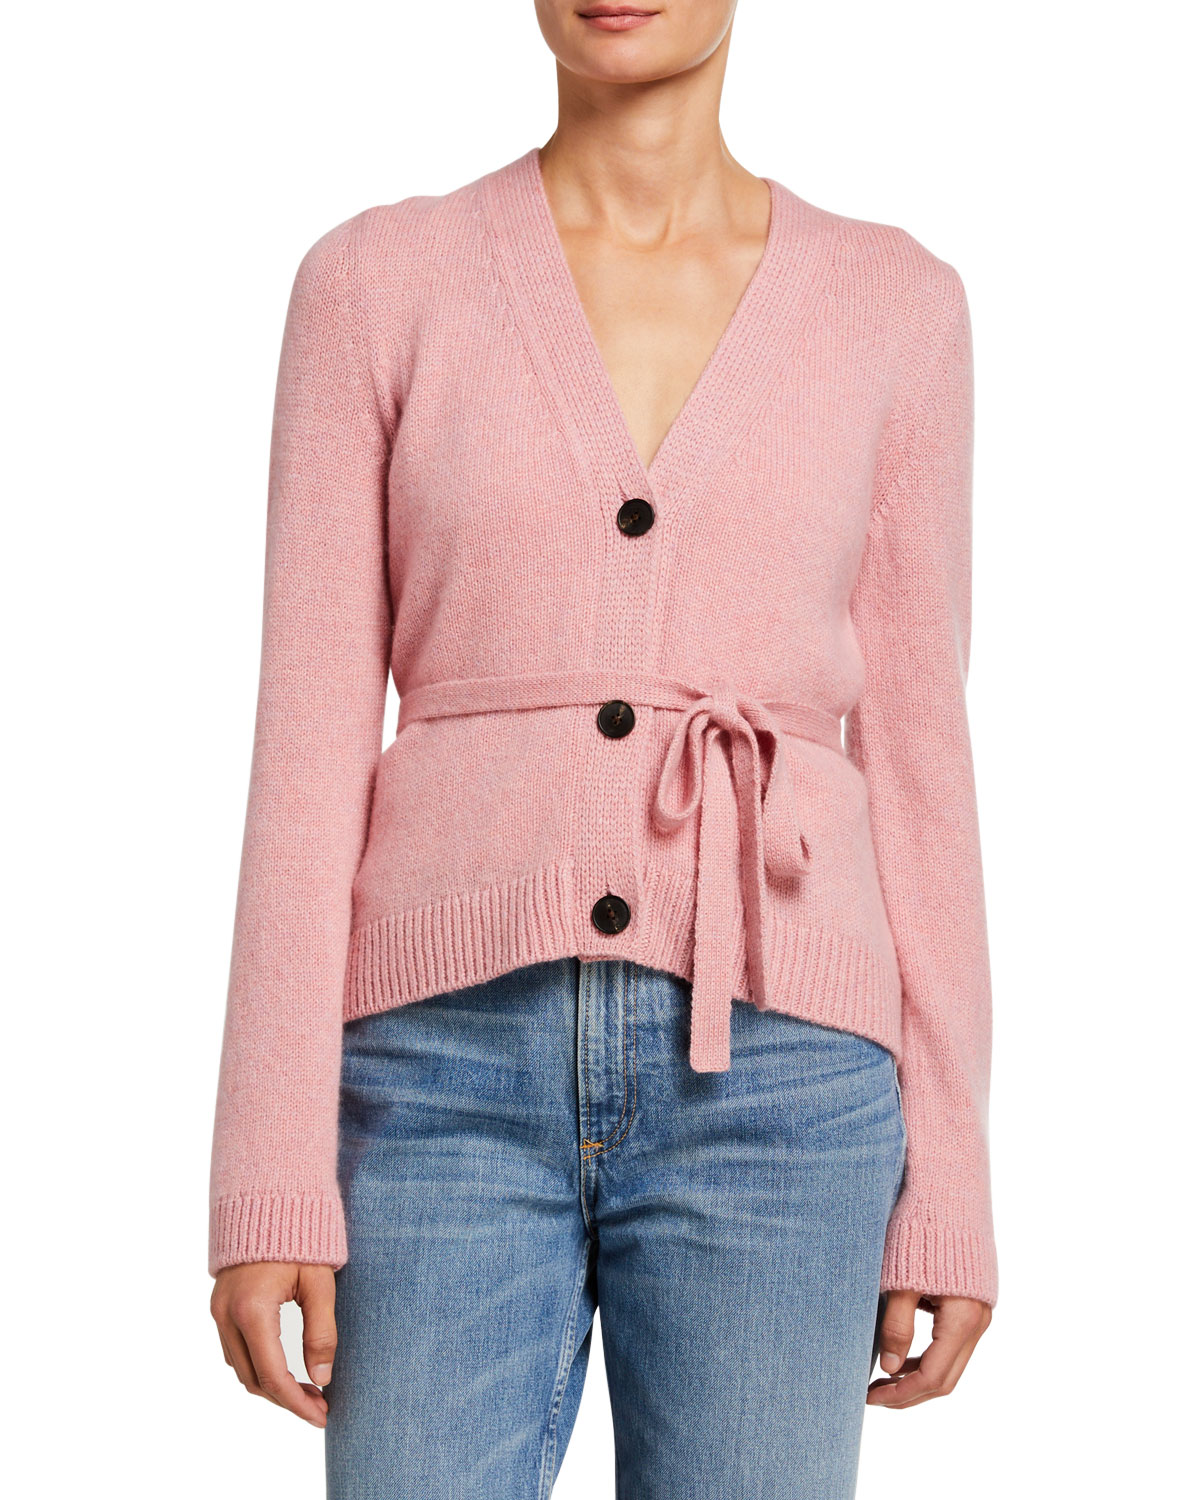 Brock Collection Cashmere Tie-Waist Cardigan